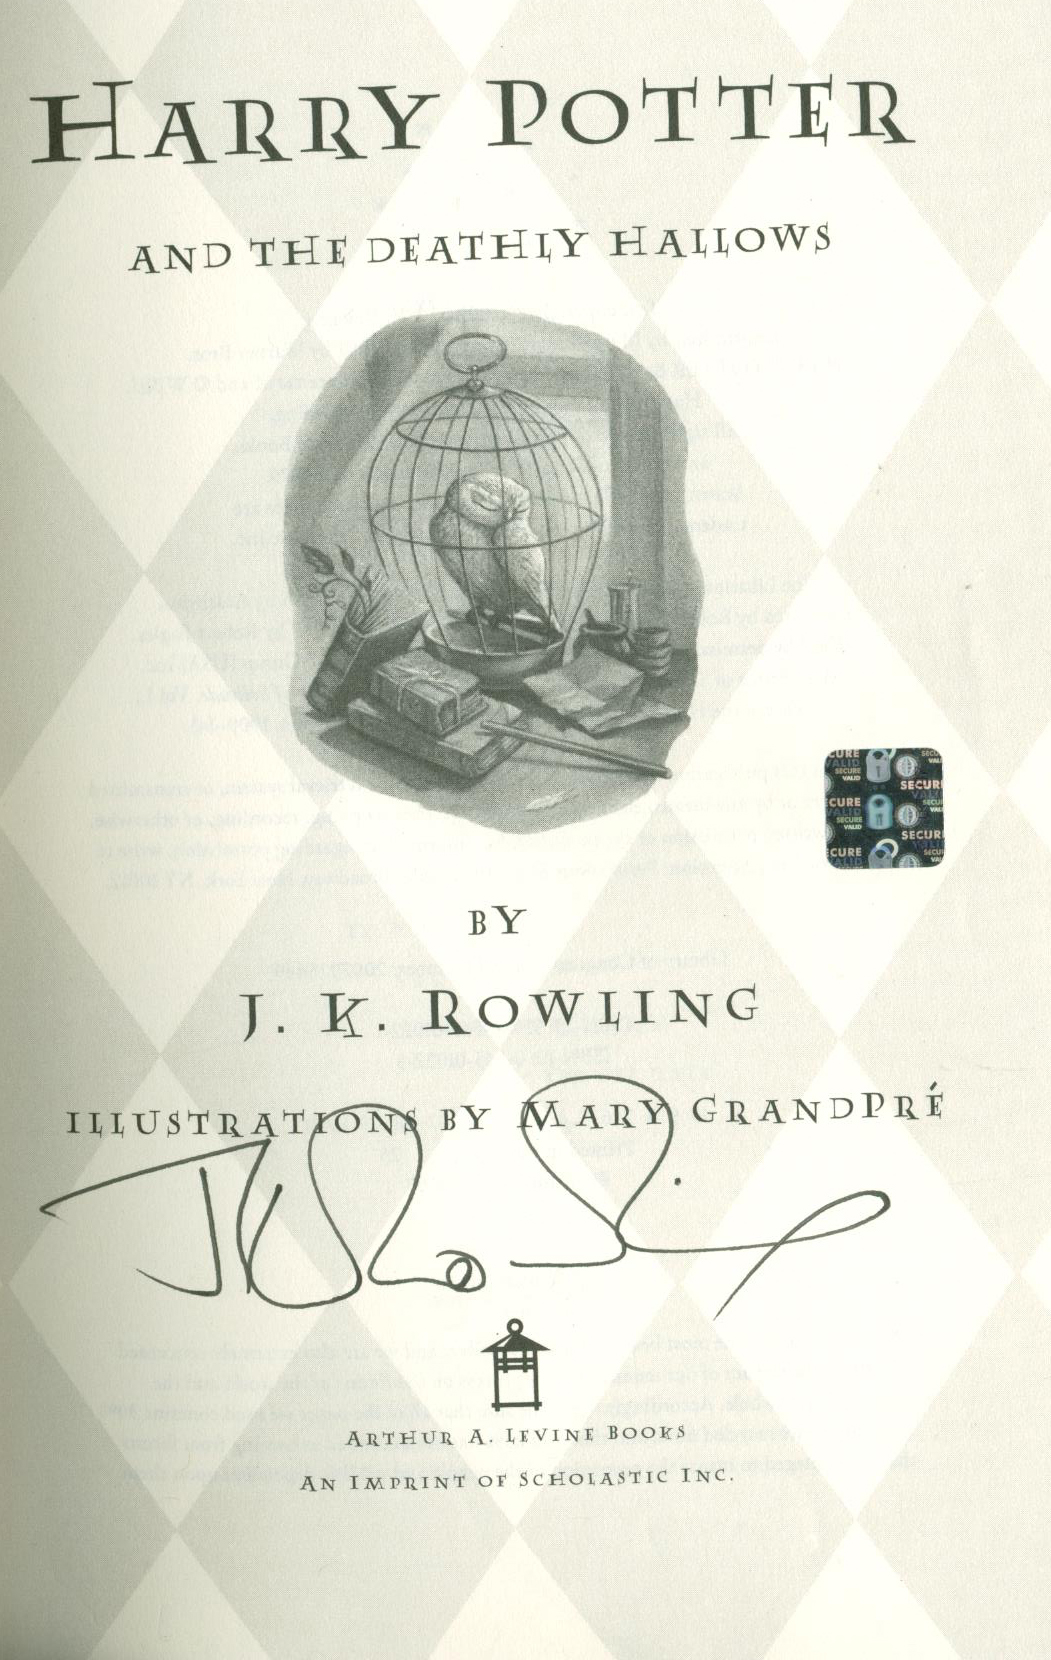 Harry Potter Book First Edition ~ Lot detail j k rowling rare signed first edition